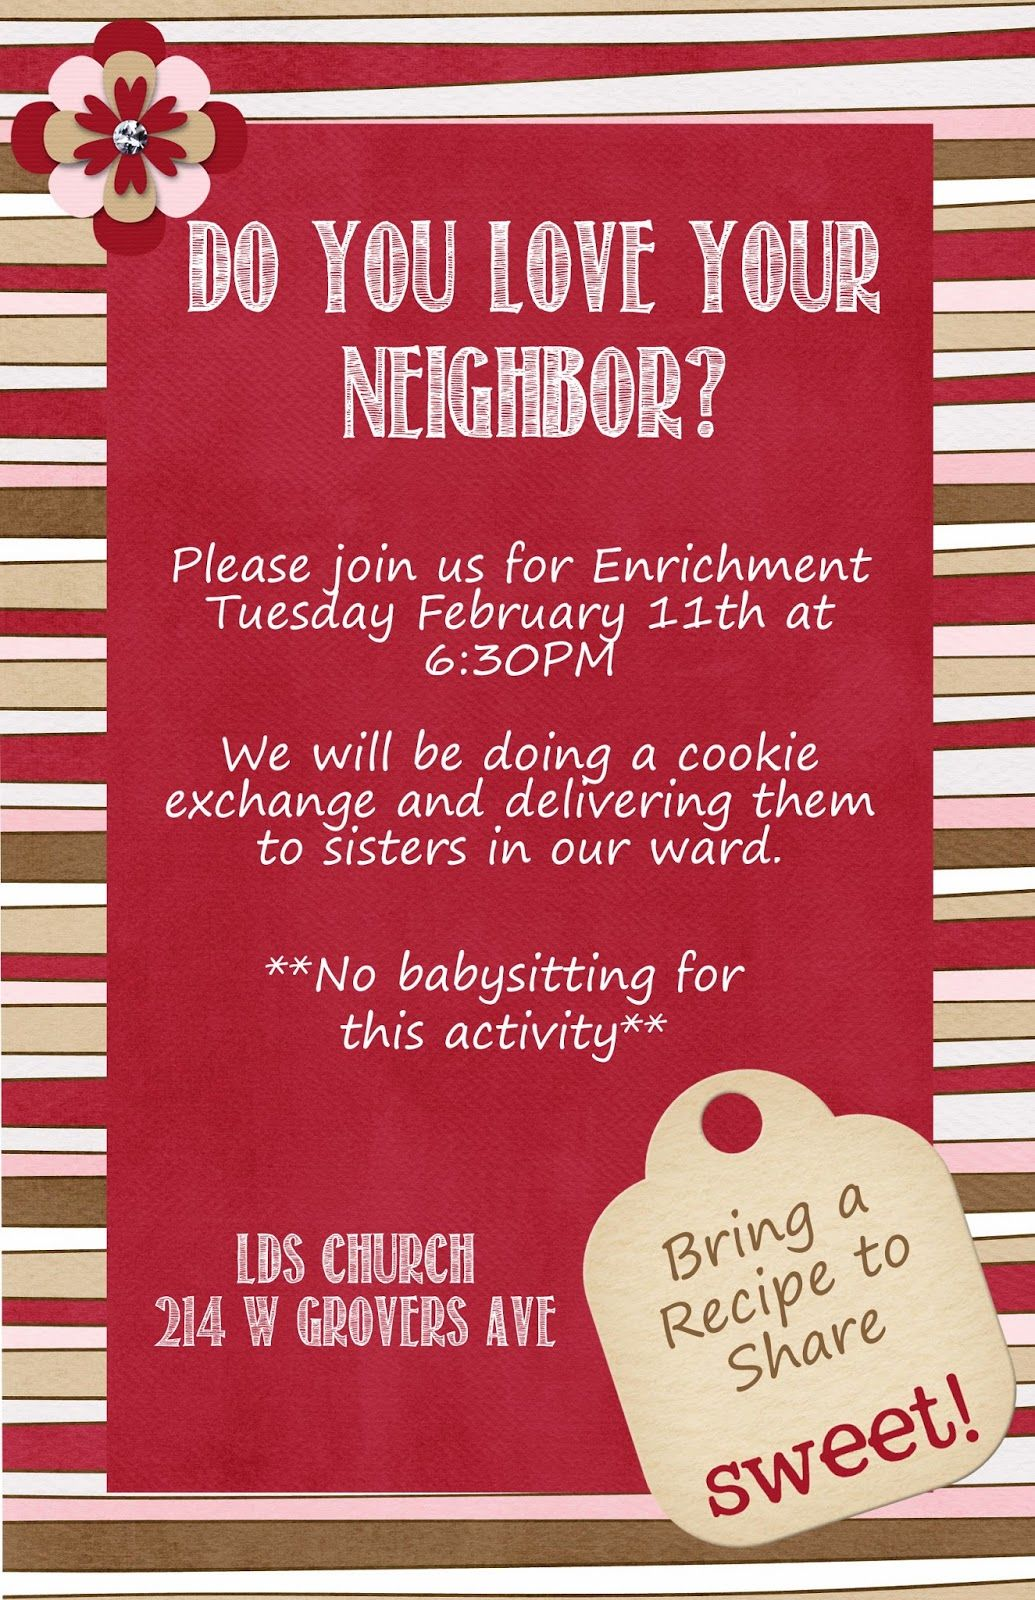 Cactus View Relief Society February Enrichment